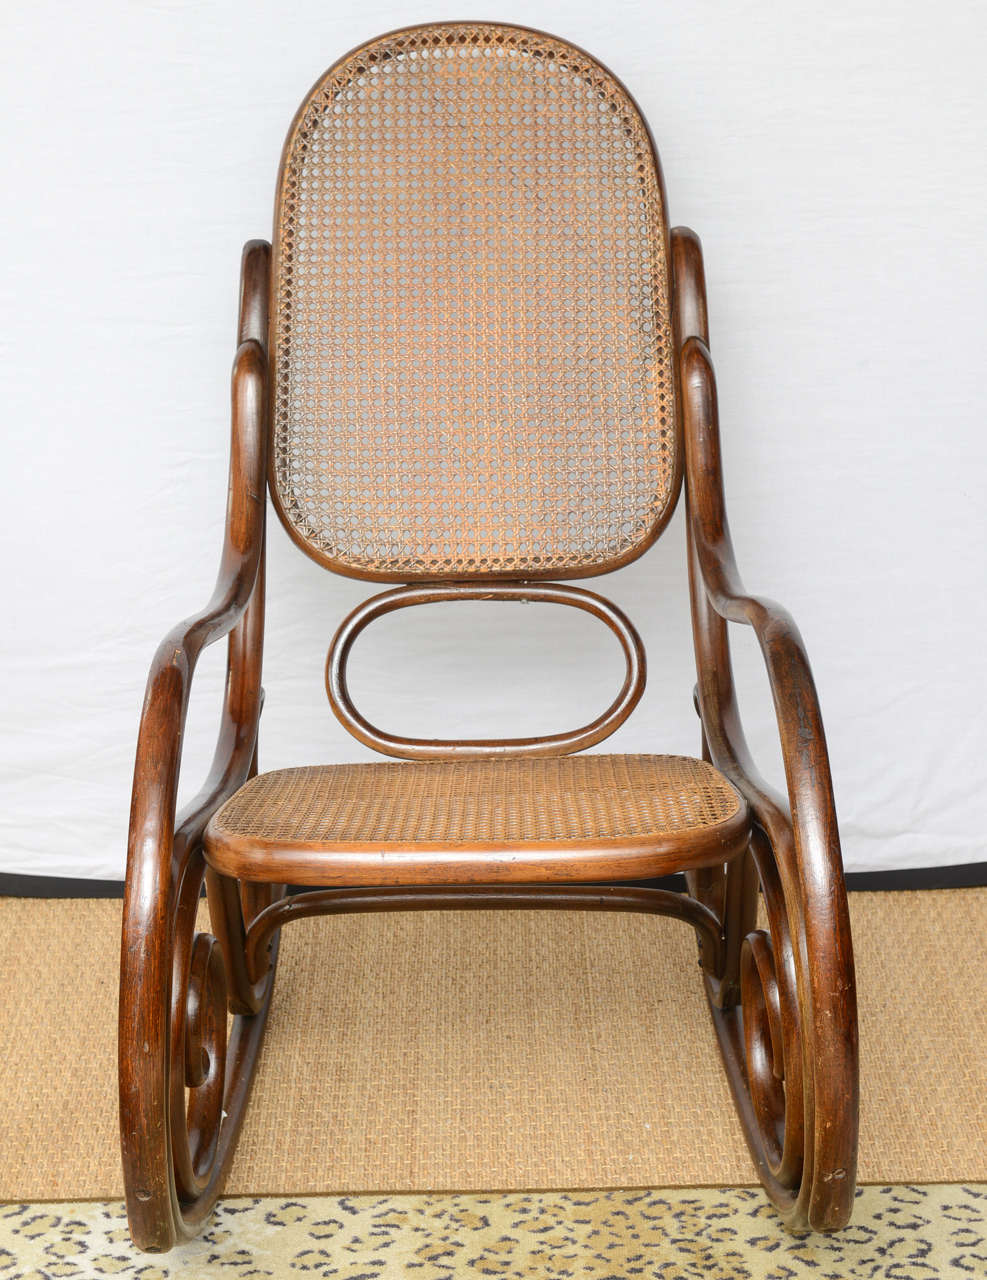 Original white painted bentwood rocking chair is no longer available - Vintage Thonet Bentwood Rocking Chair 3